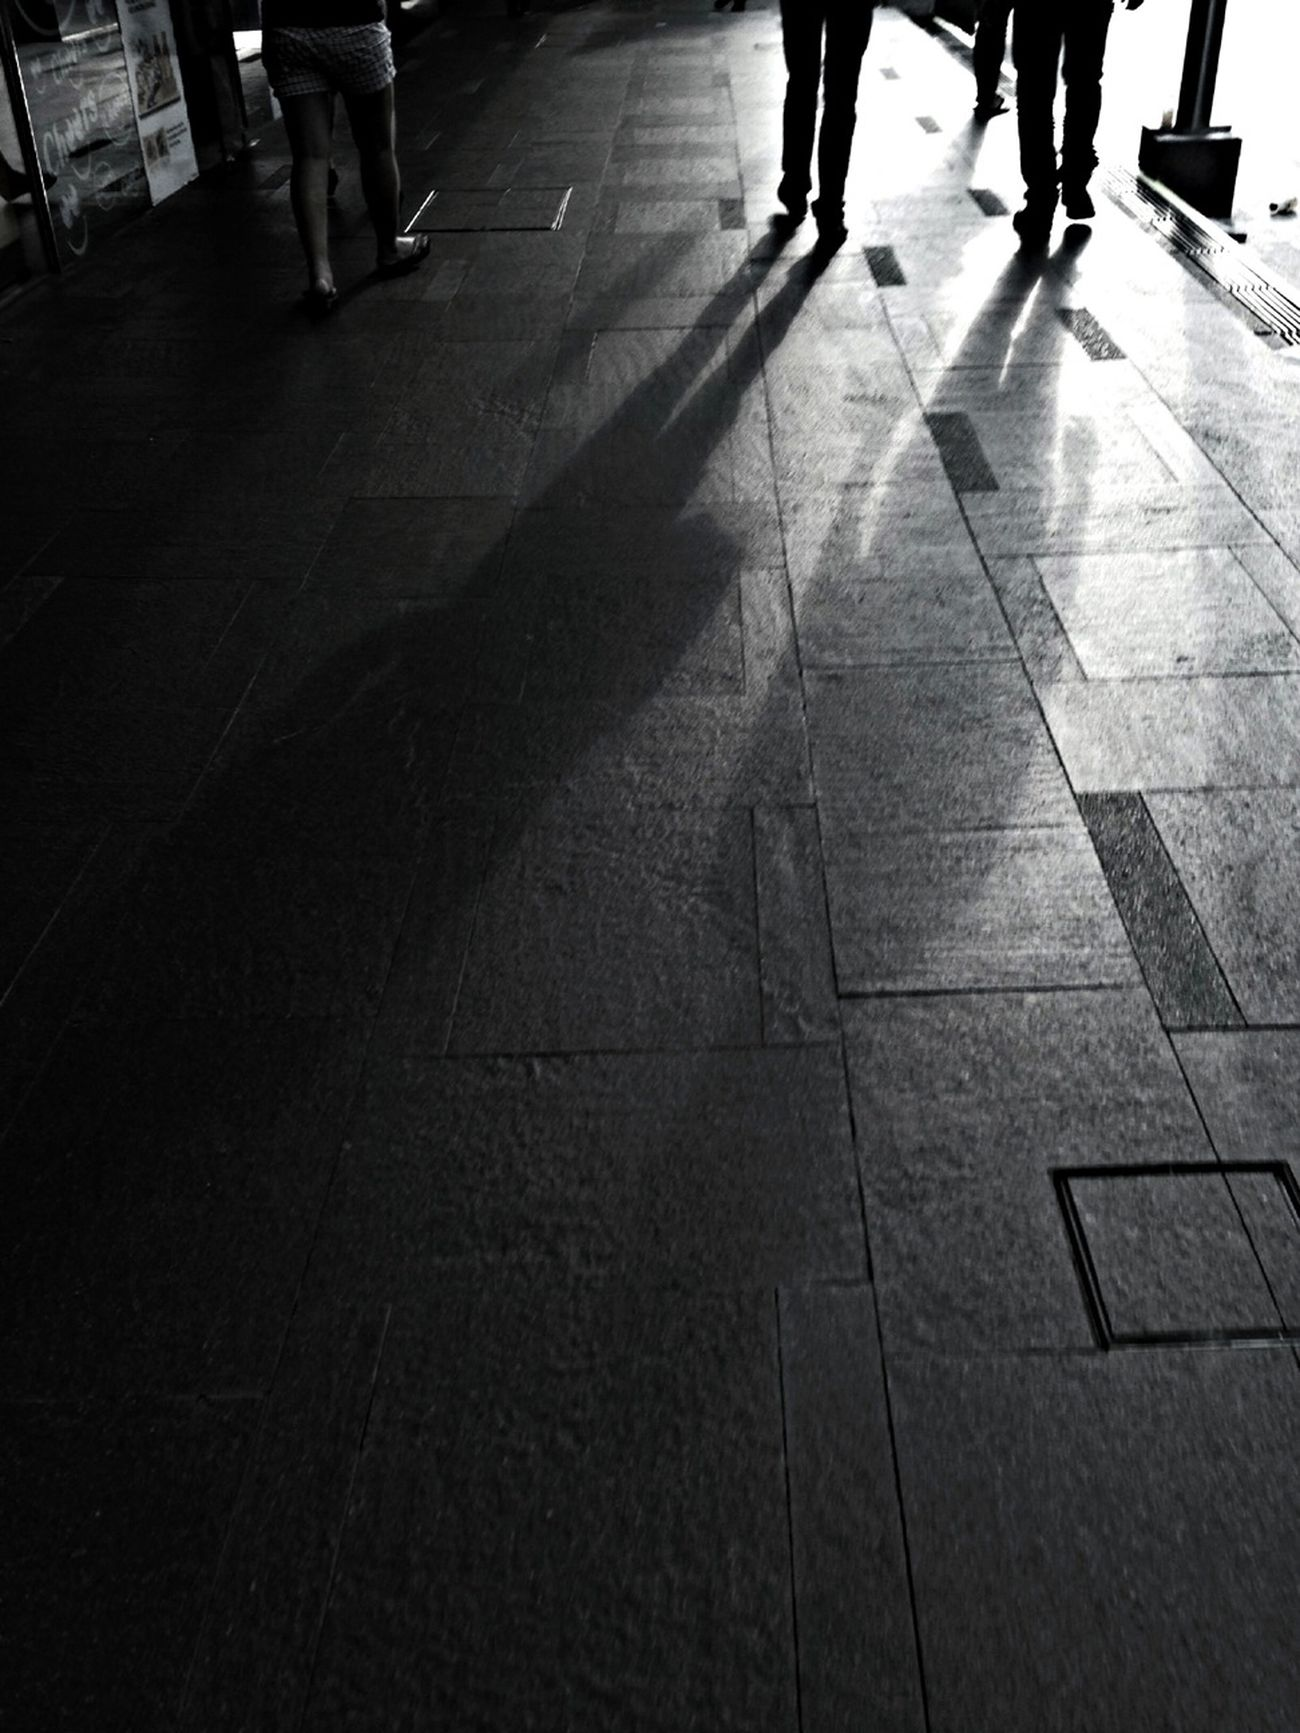 Don't depend too much on anyone in this world because even your own shadow leaves you when you are in darkness. Rush Hour Streetphoto_bw B+W Always Look On The Bright Side Of Life